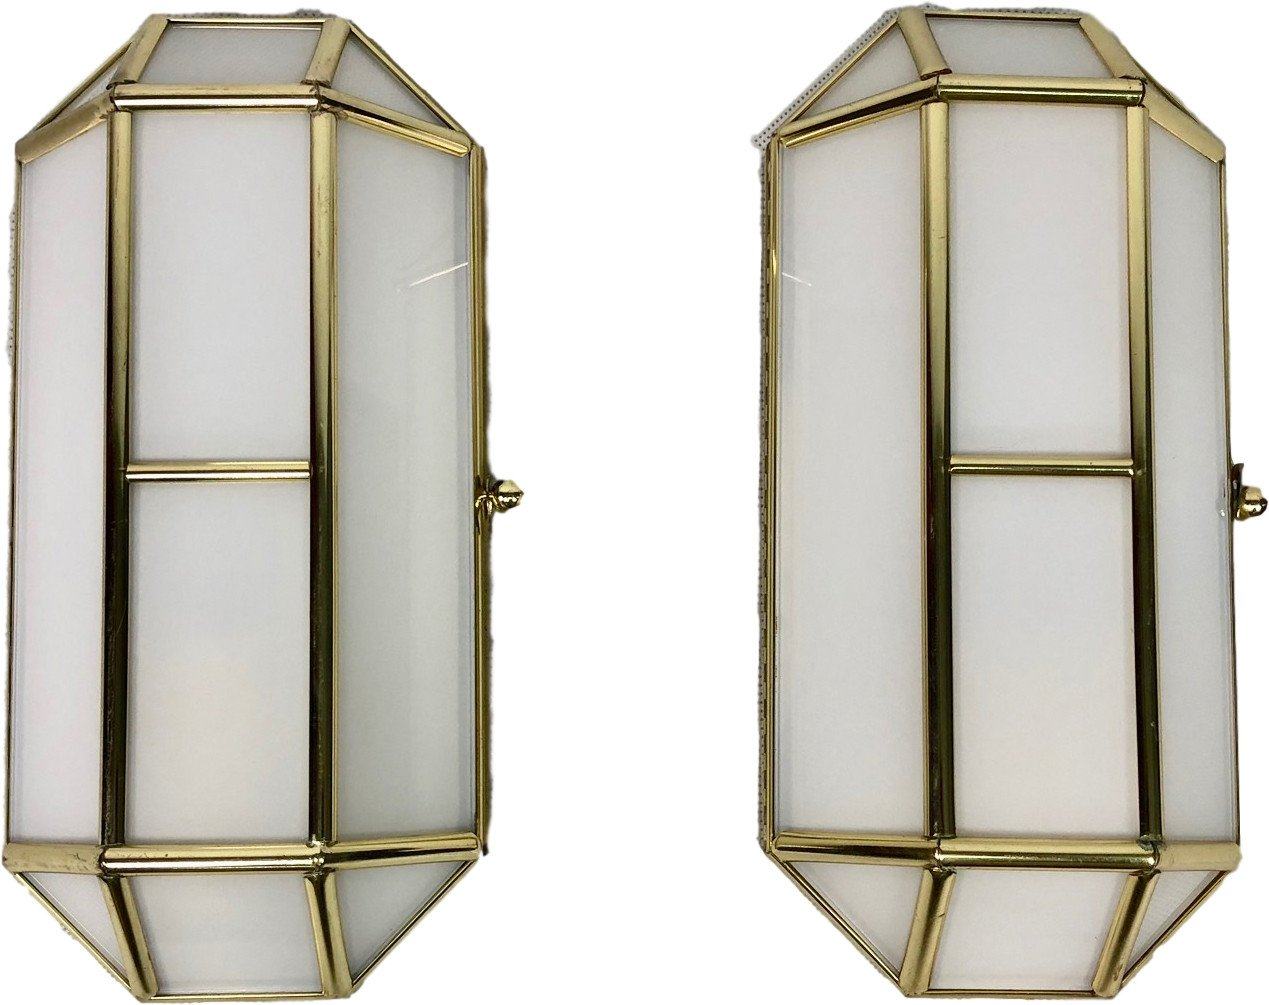 Pair of Wall Lamps, Licht Studio Eisenkeil, Germany, 1970s